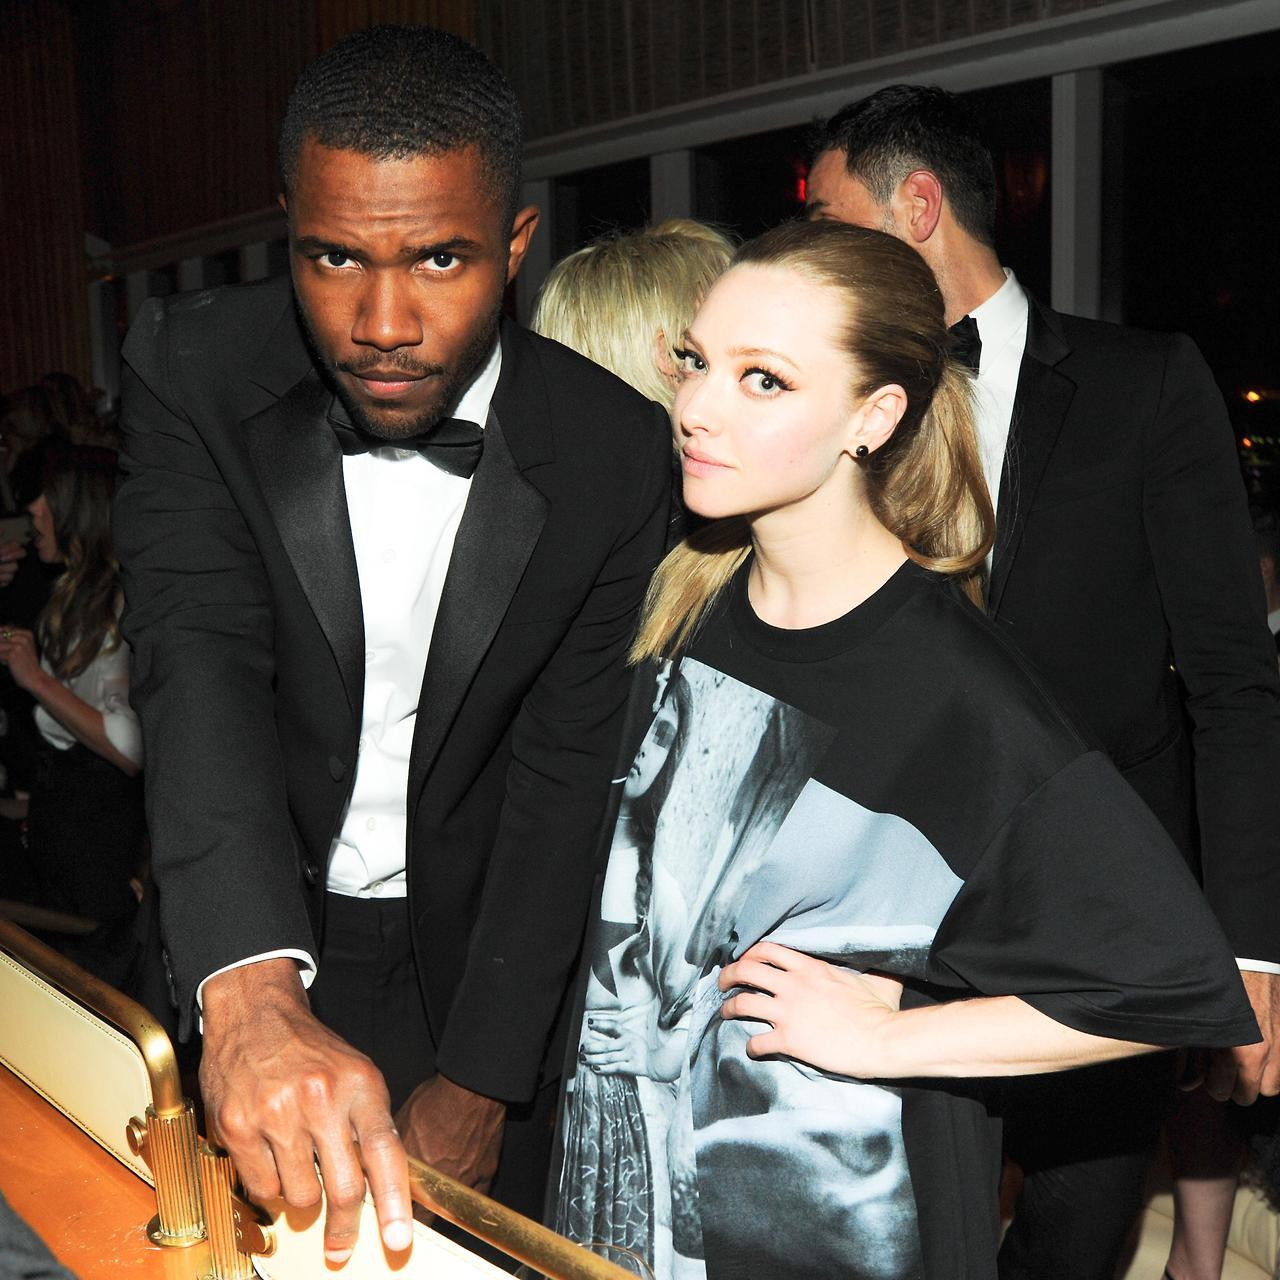 lets-be-stronger-together:  MET Gala 2013 : Frank Ocean and Amanda Seyfried